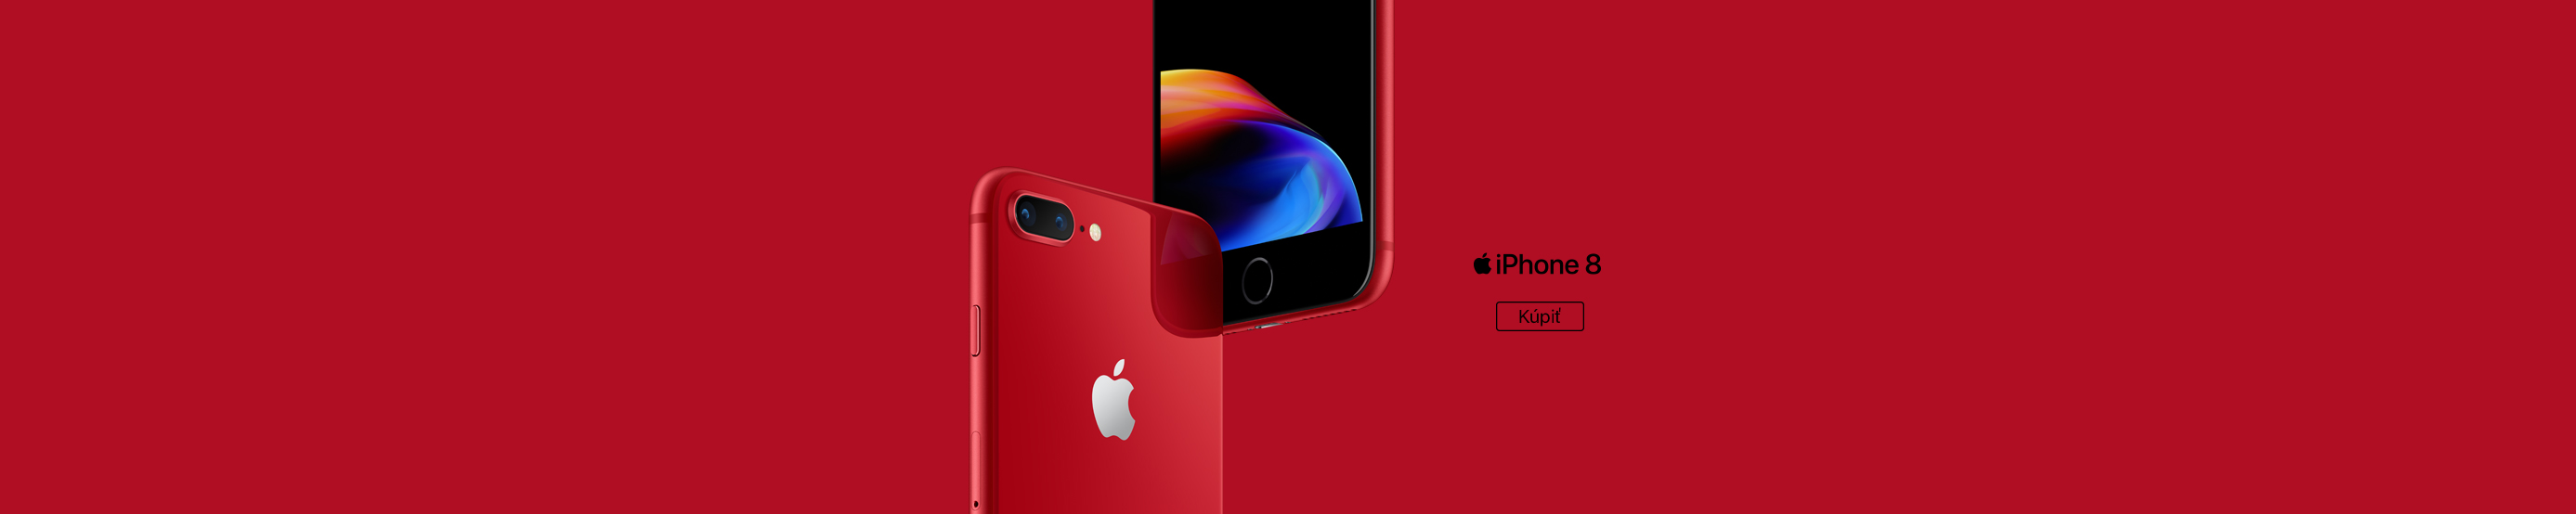 iPhone 8 (PRODUCT)RED už čoskoro